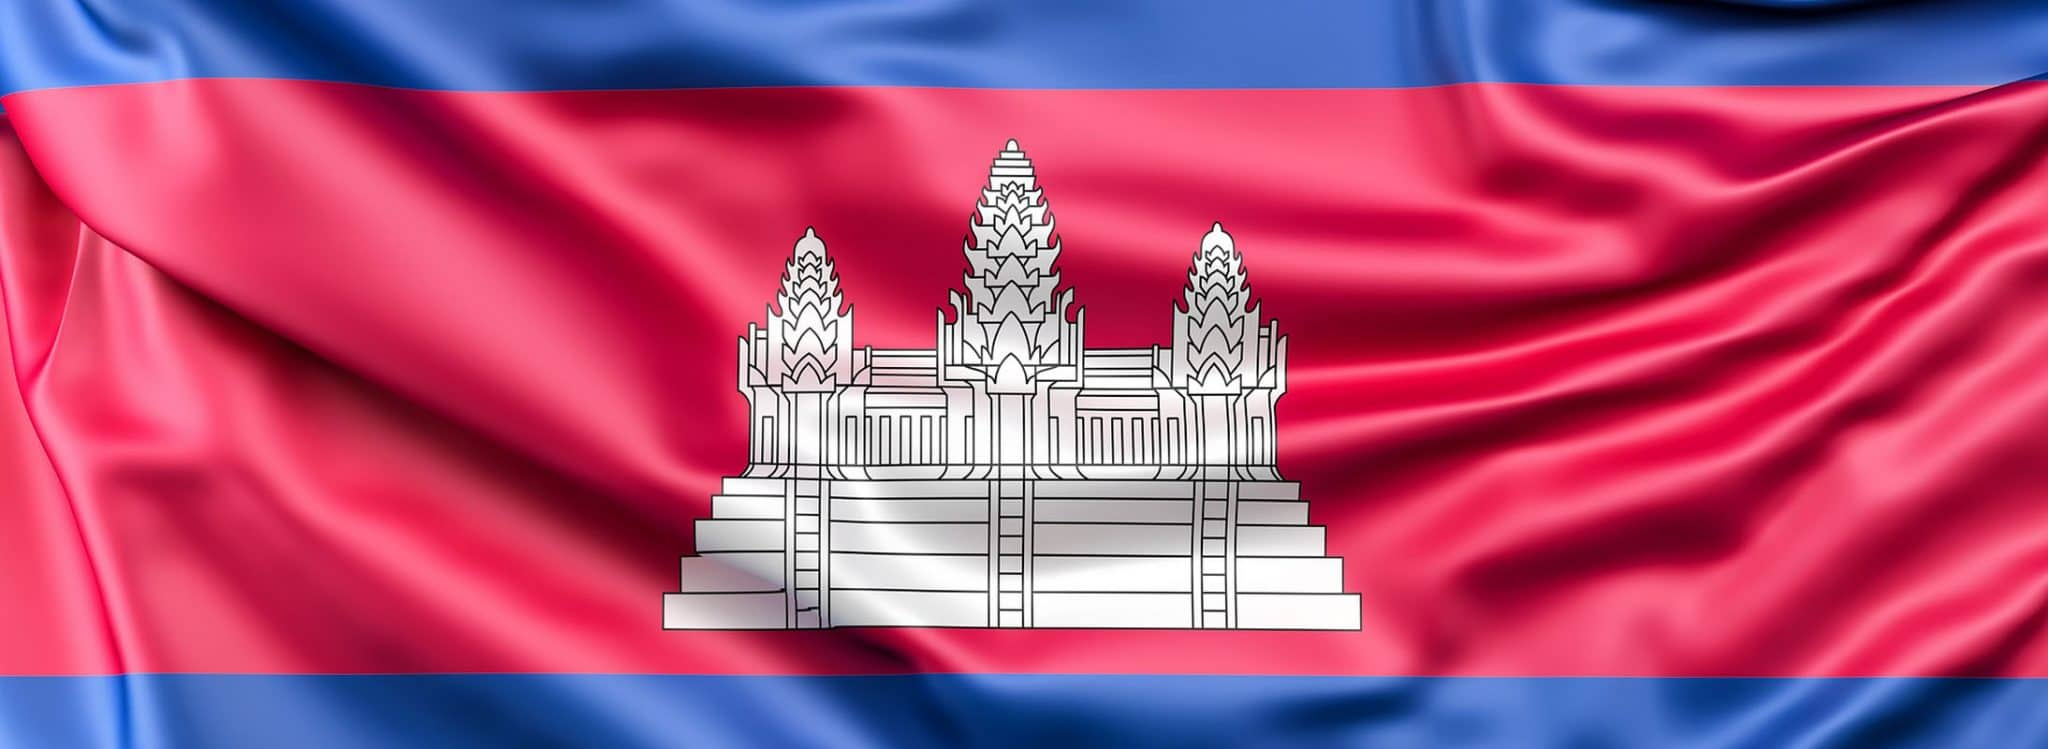 Cambodia Set To Ban Online Gambling In 2020 element01 - CasinoTop